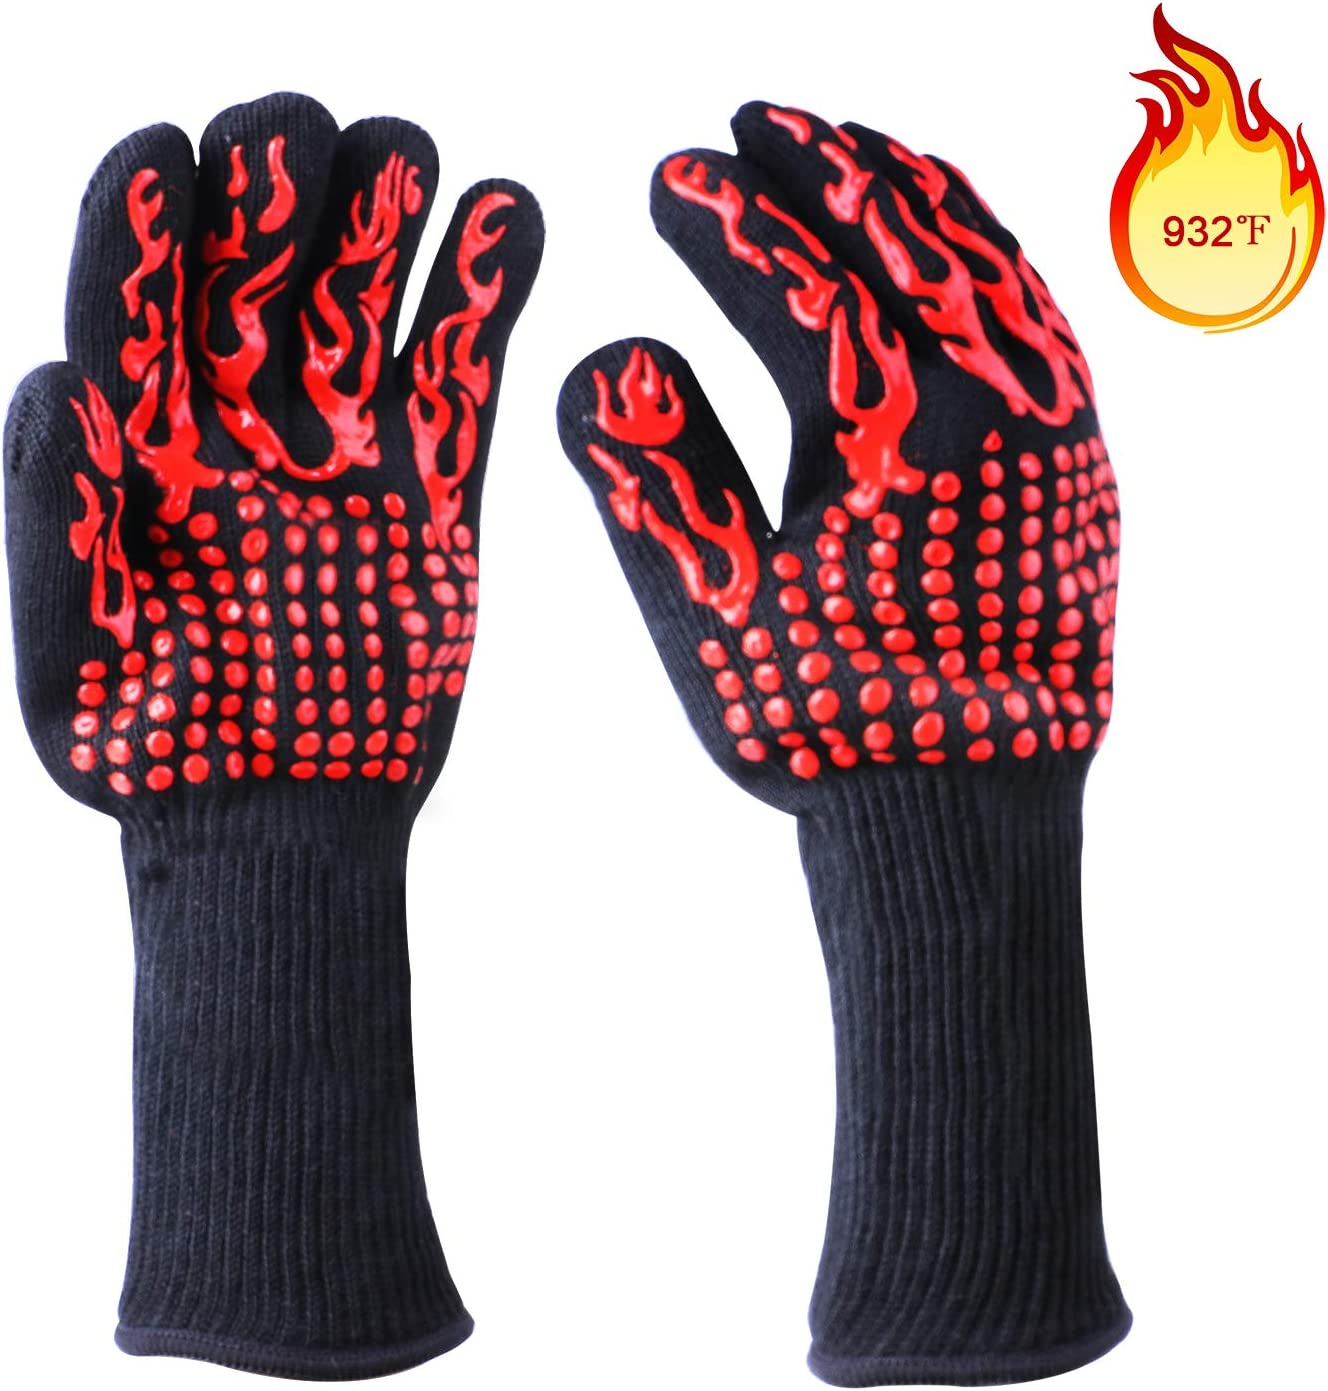 MM20LEMO BBQ Grill Gloves, 932°F Extreme Heat Resistant Grilling, Cooking, Baking, Welding Gloves Non-Slip Oven Mitts Potholder(1 Pair) (red)